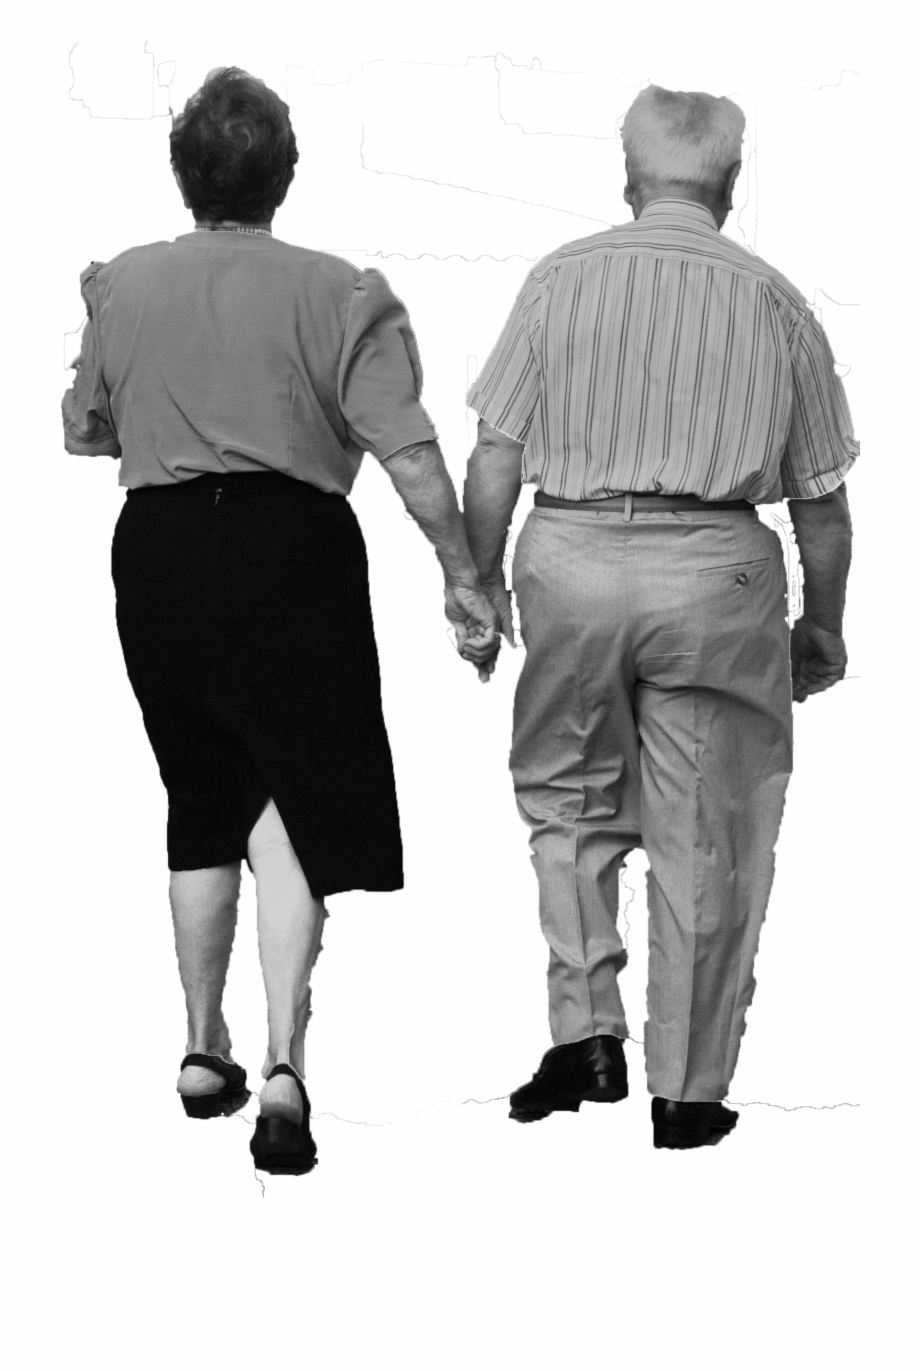 Old Couple Walking Old Couple Holding Hand Walking.